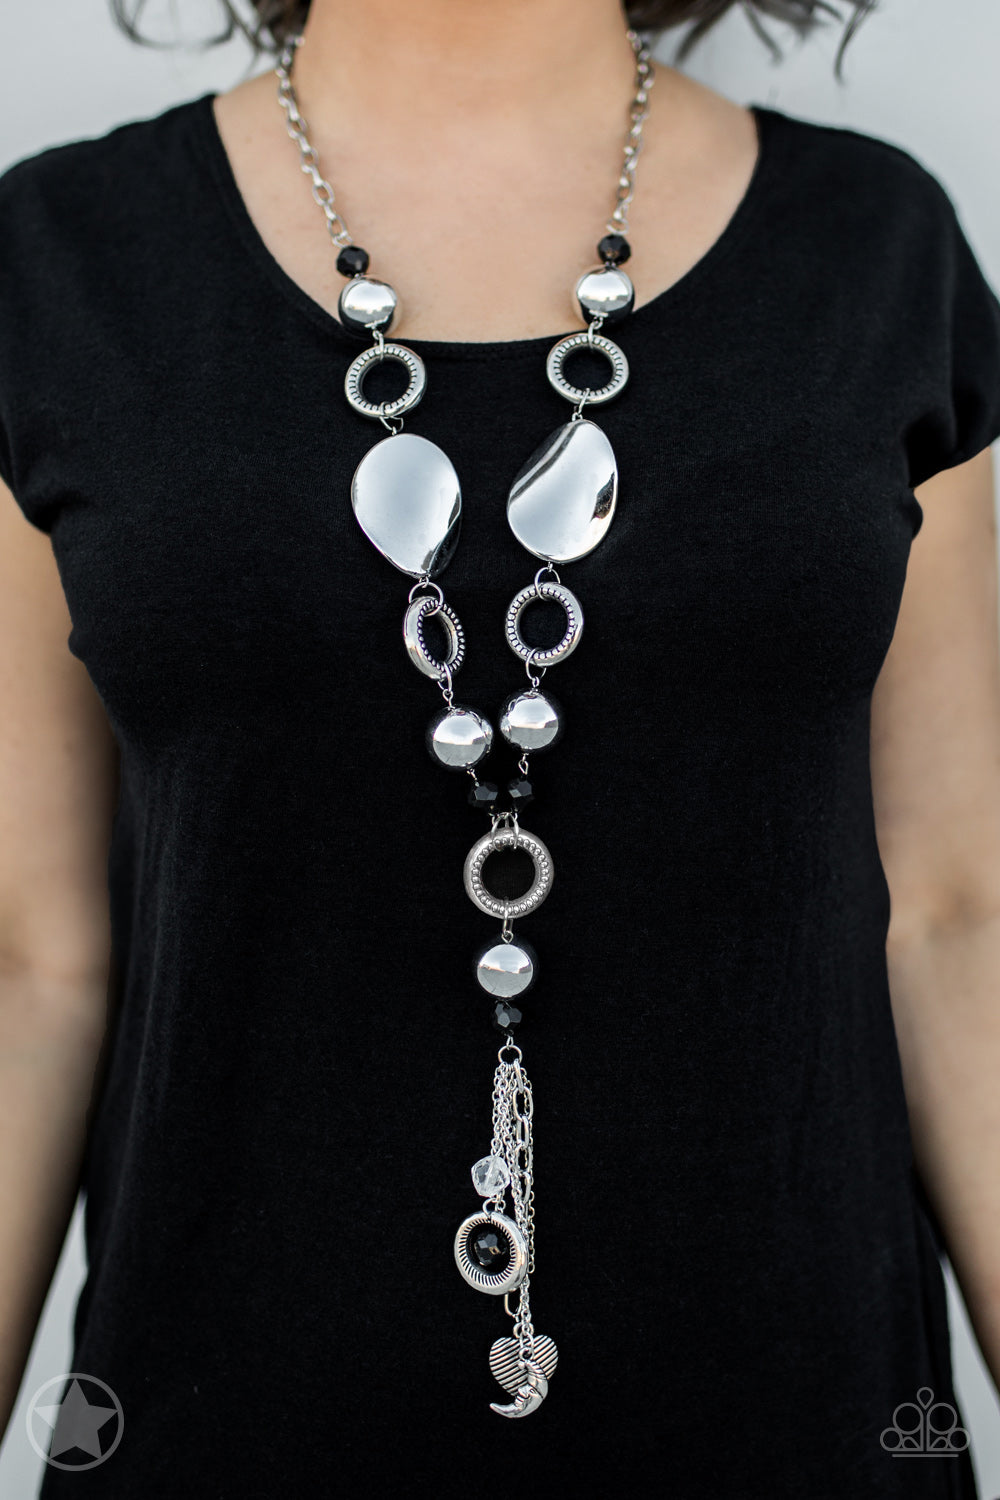 Paparazzi Accessories - Total Eclipse Of The Heart - Blockbuster Necklace